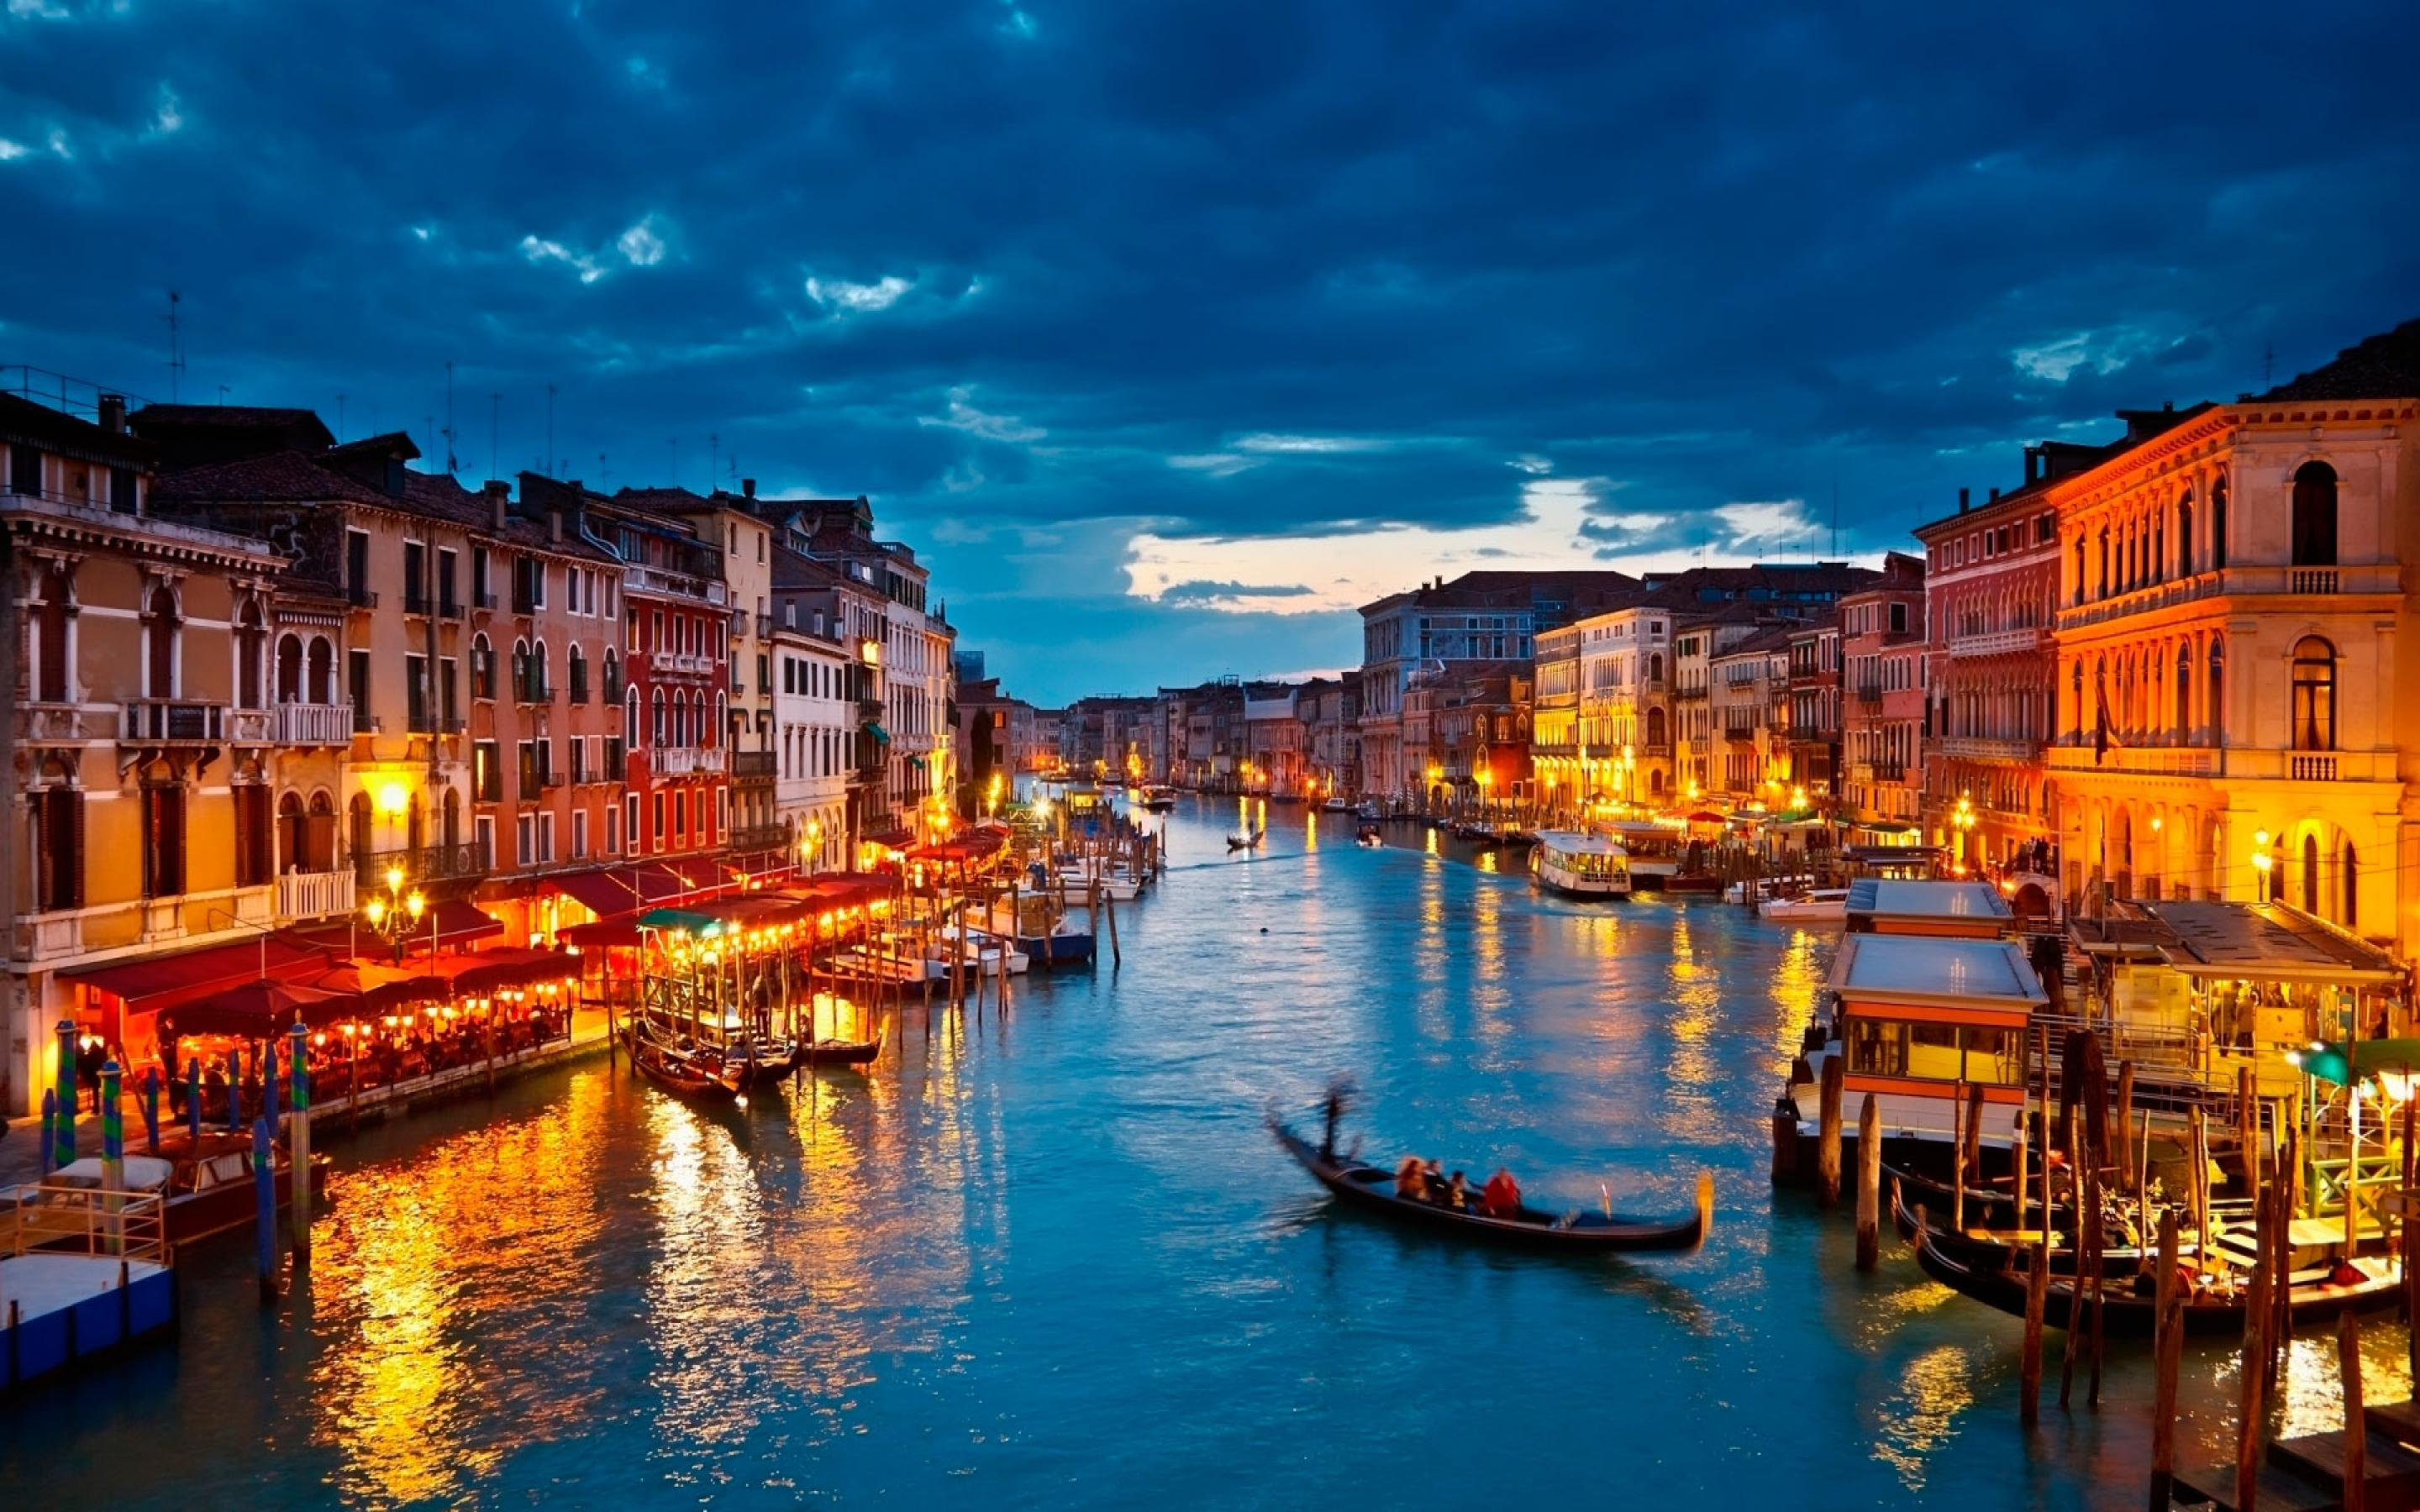 venice-is-a-beautiful-cities-in-italy-2880x1800